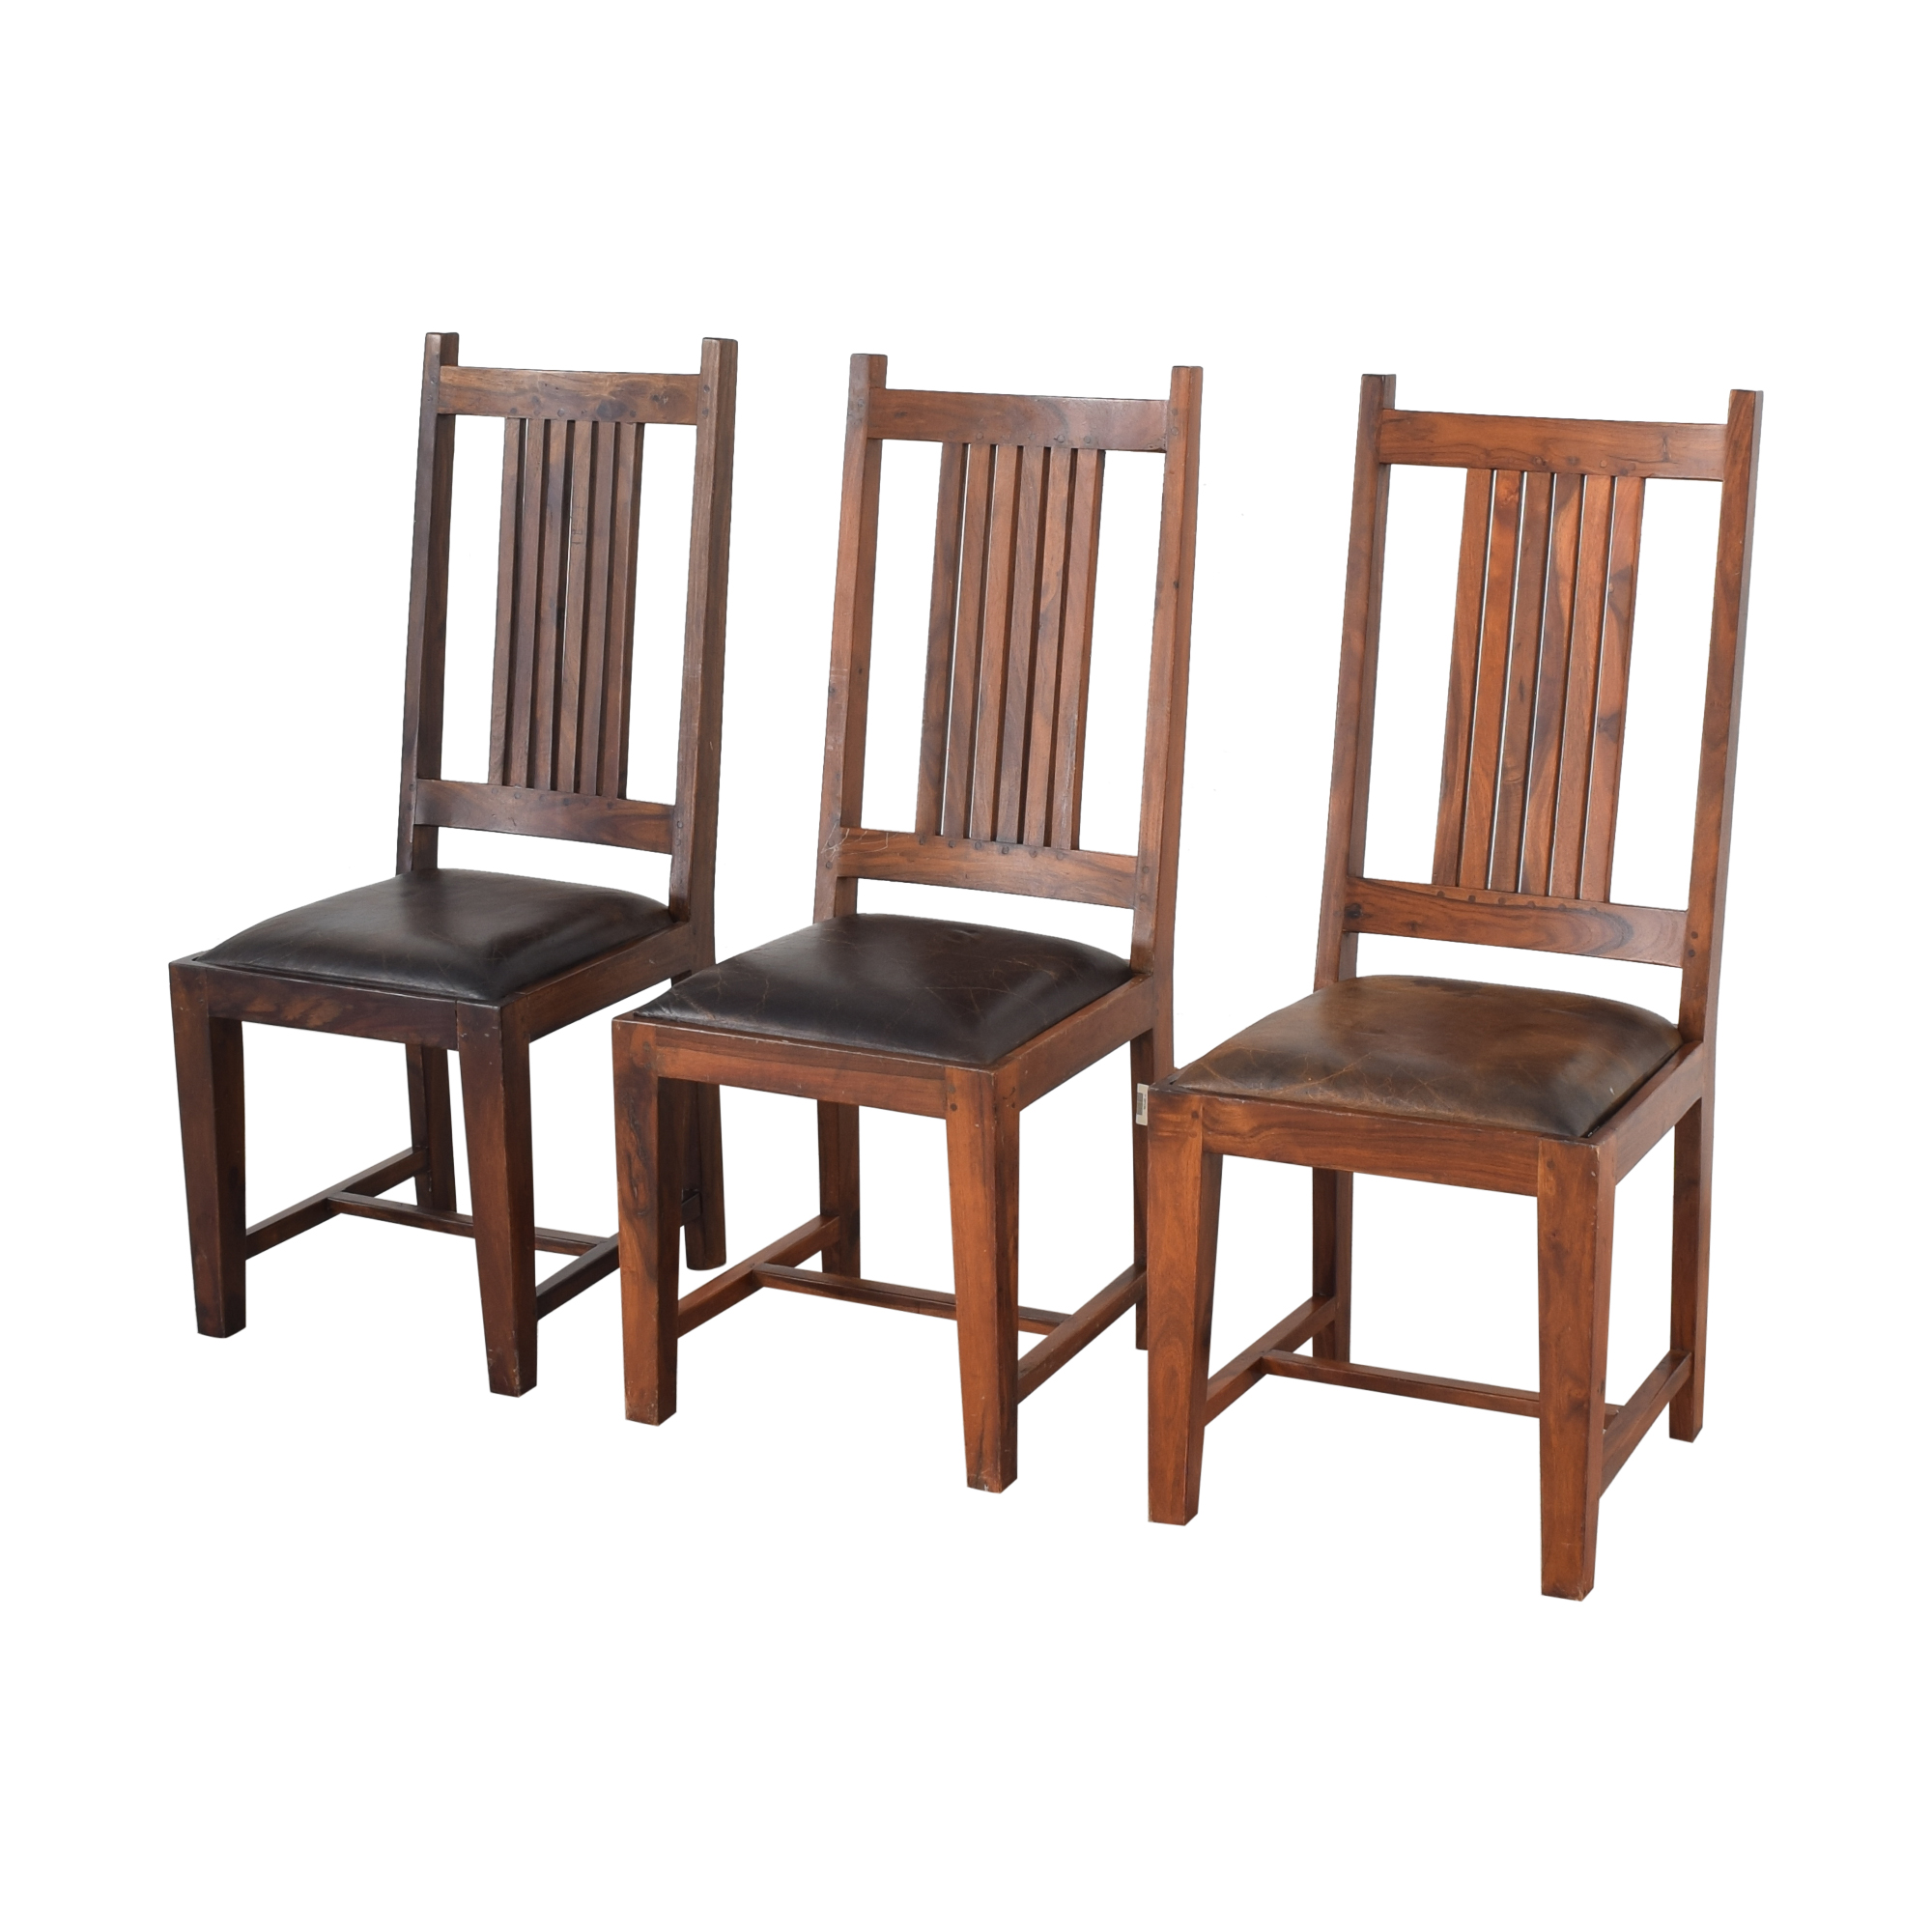 ABC Carpet & Home ABC Carpet & Home Dining Chairs used